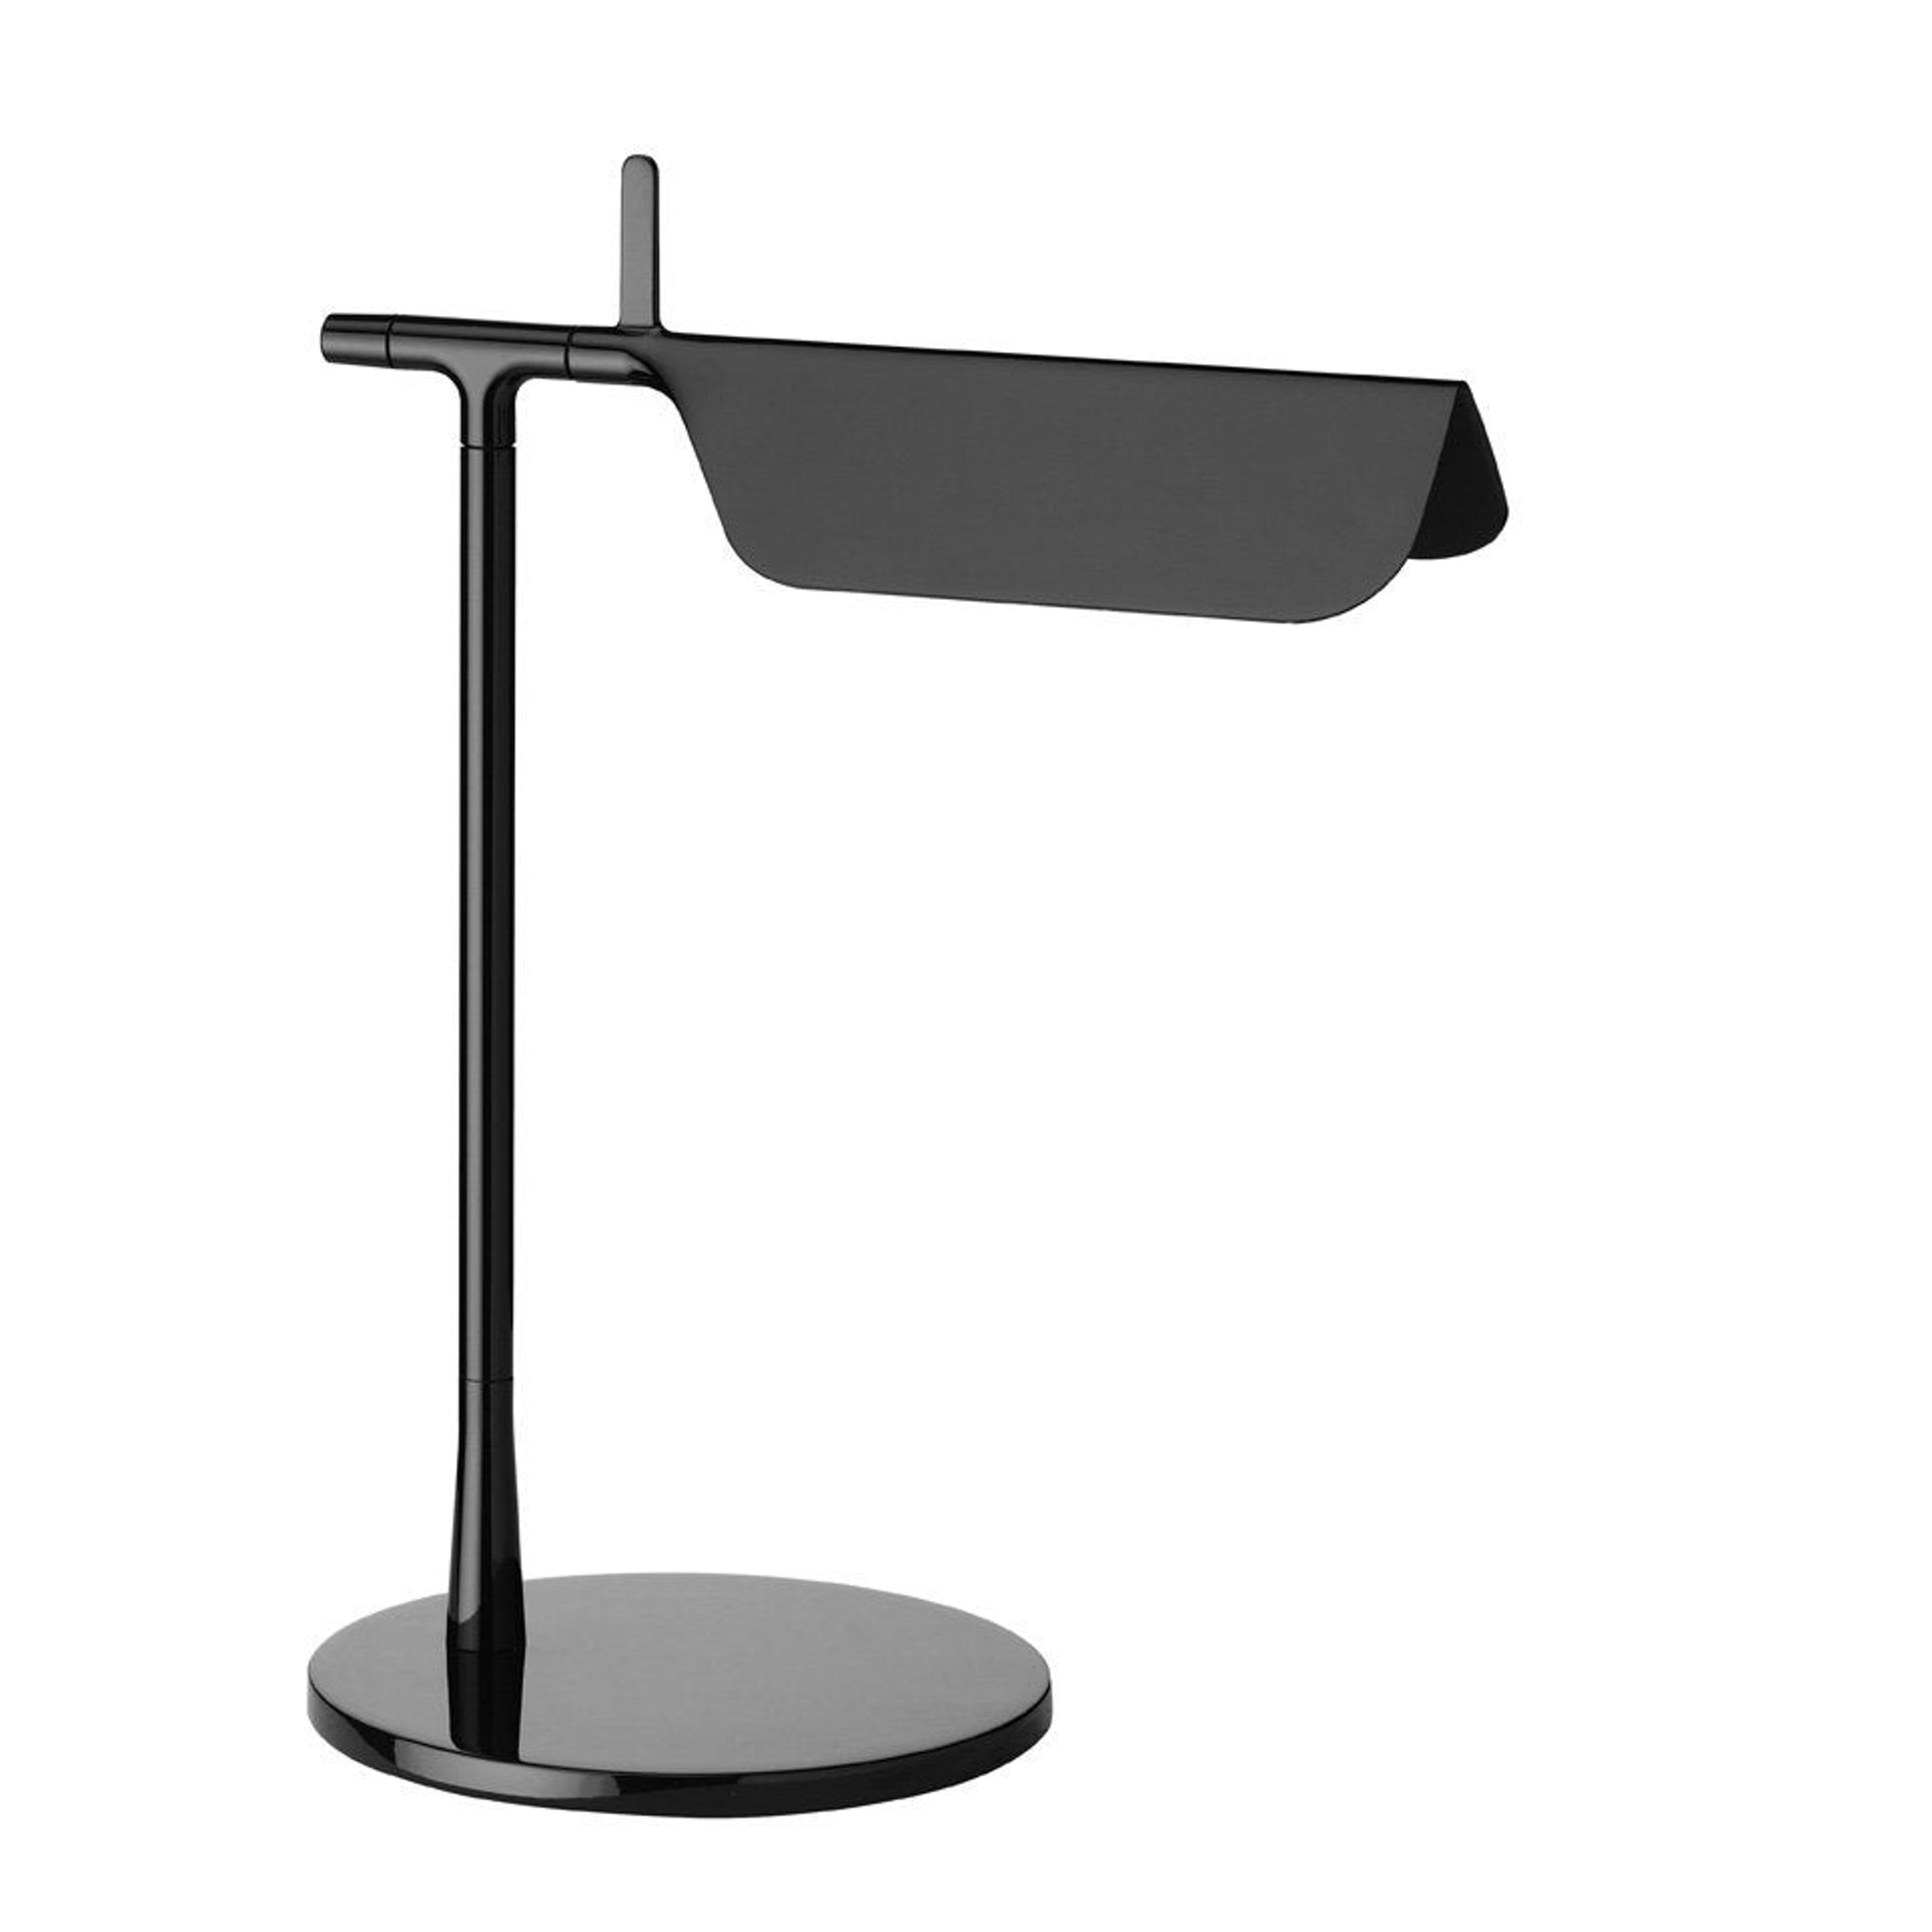 Tab Table Light by Flos